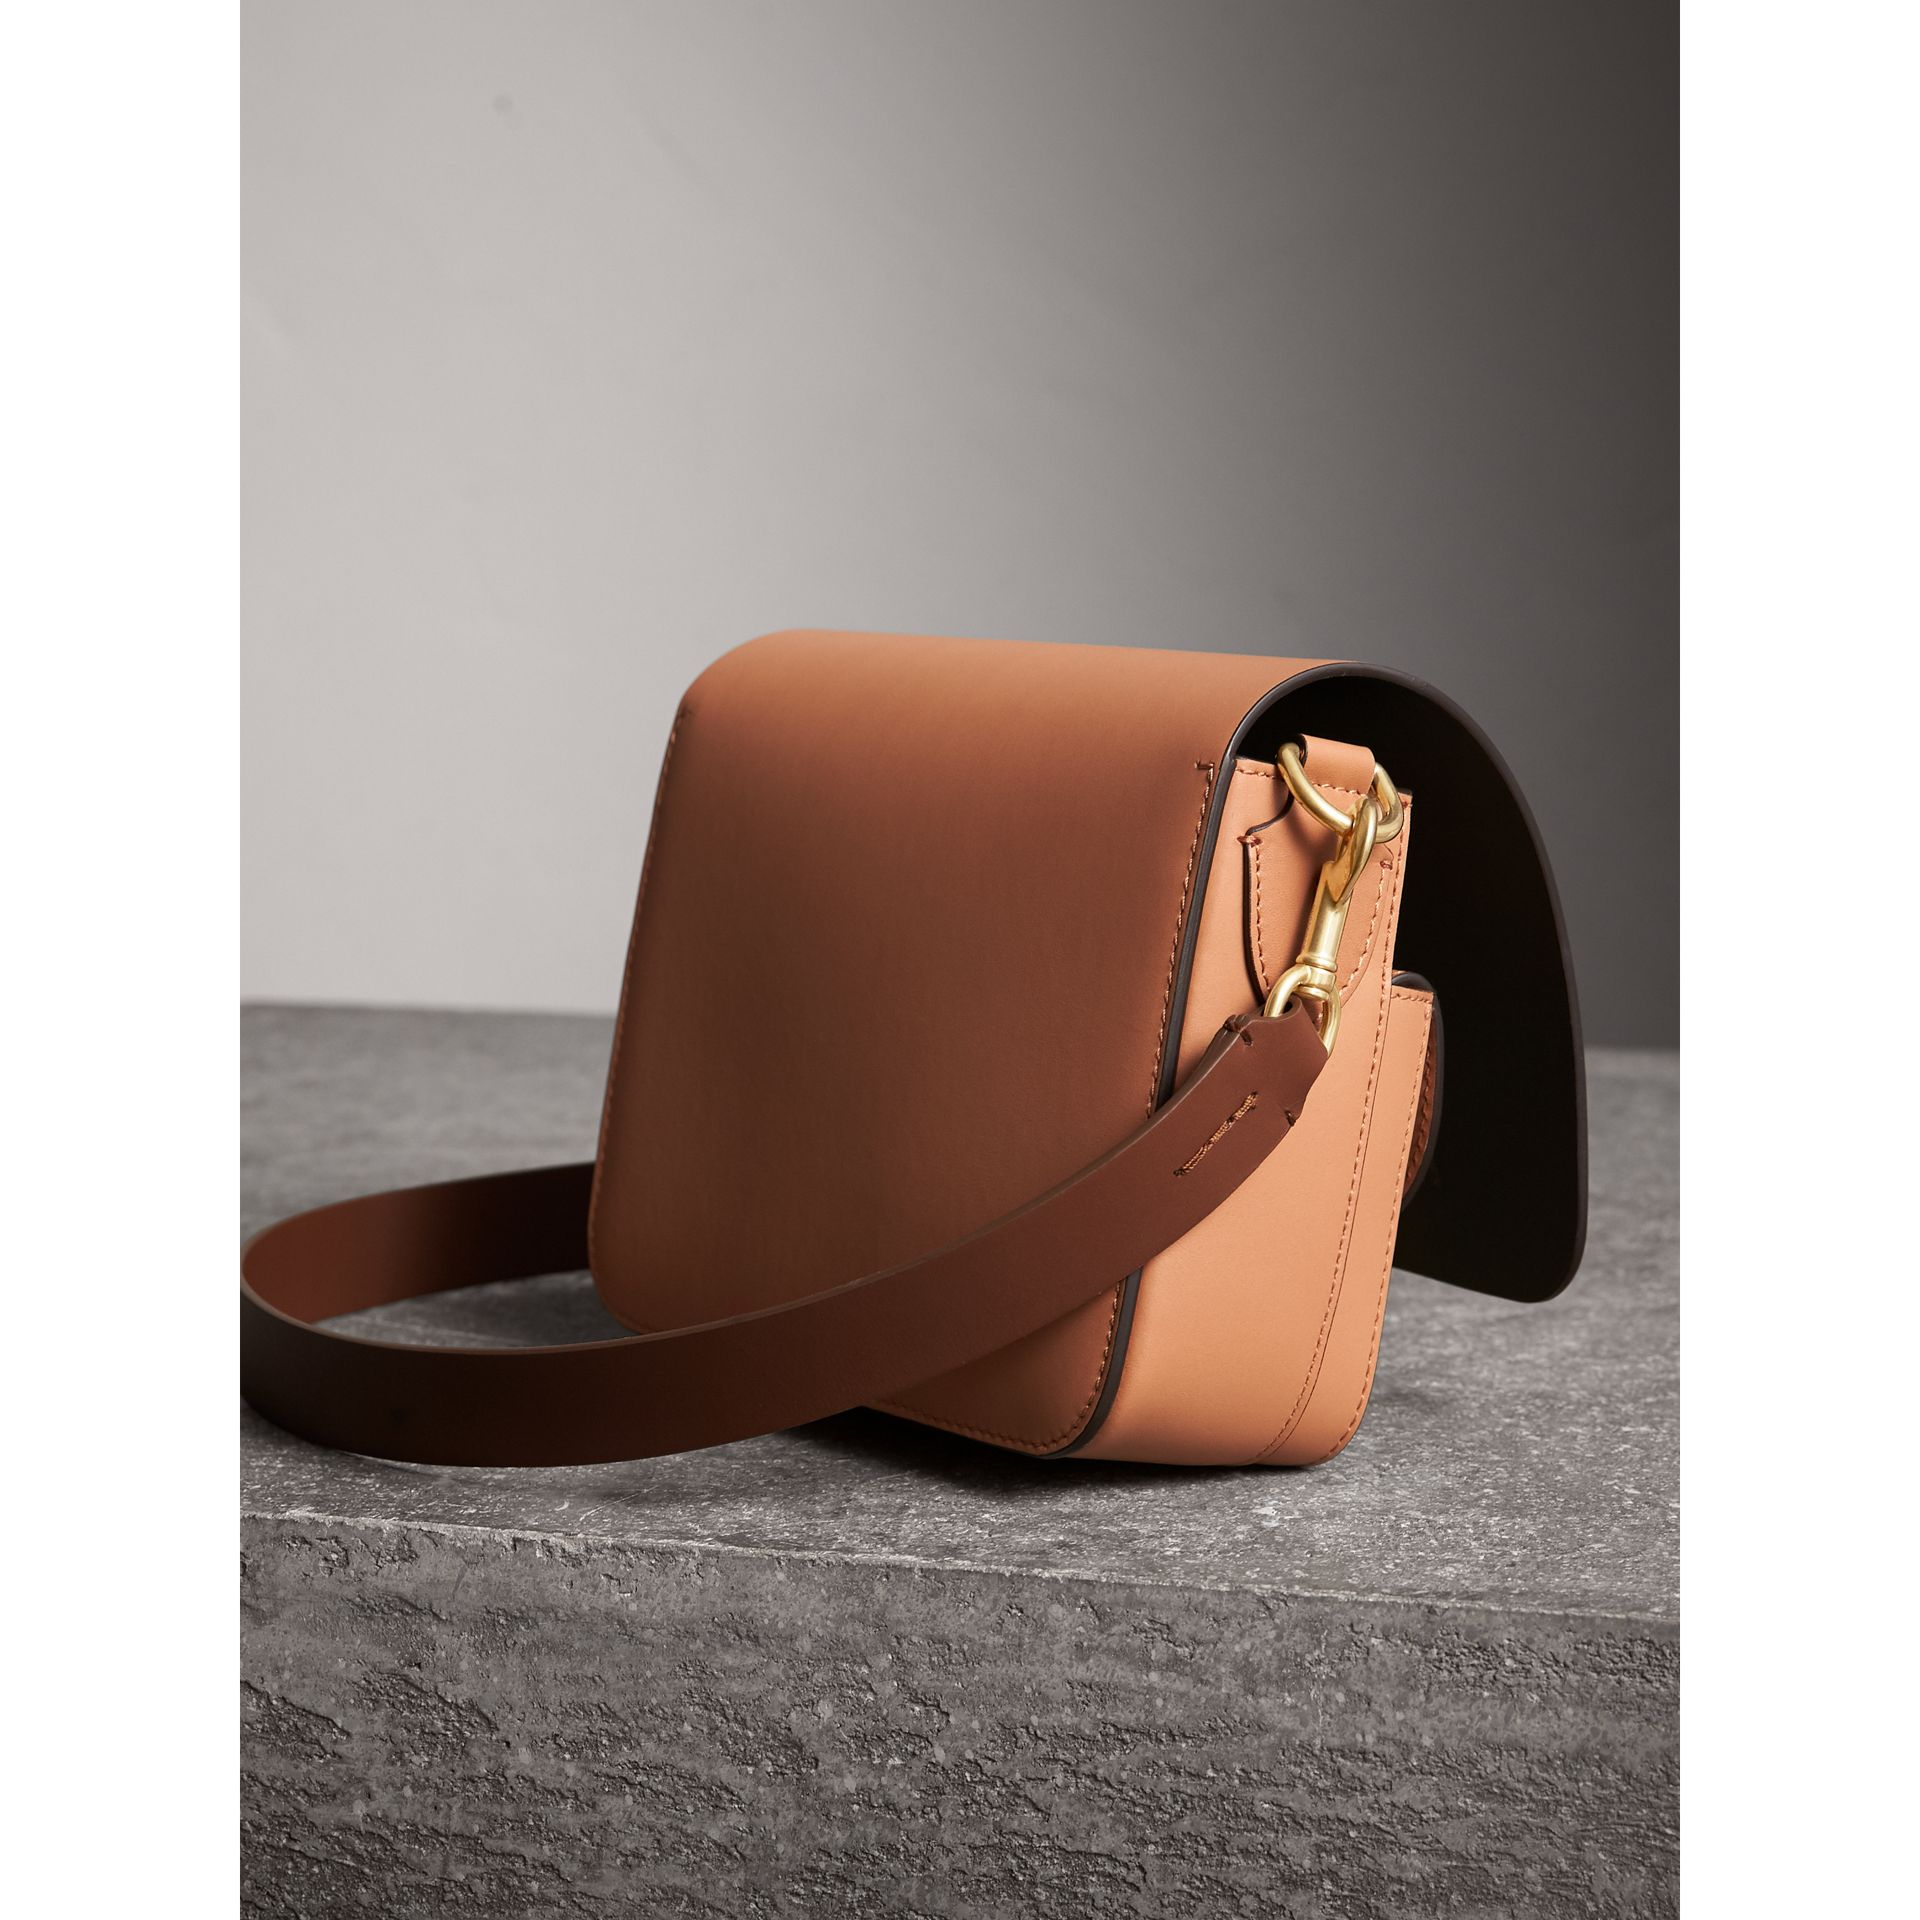 The Square Satchel in Leather in Camel - Women | Burberry - gallery image 4